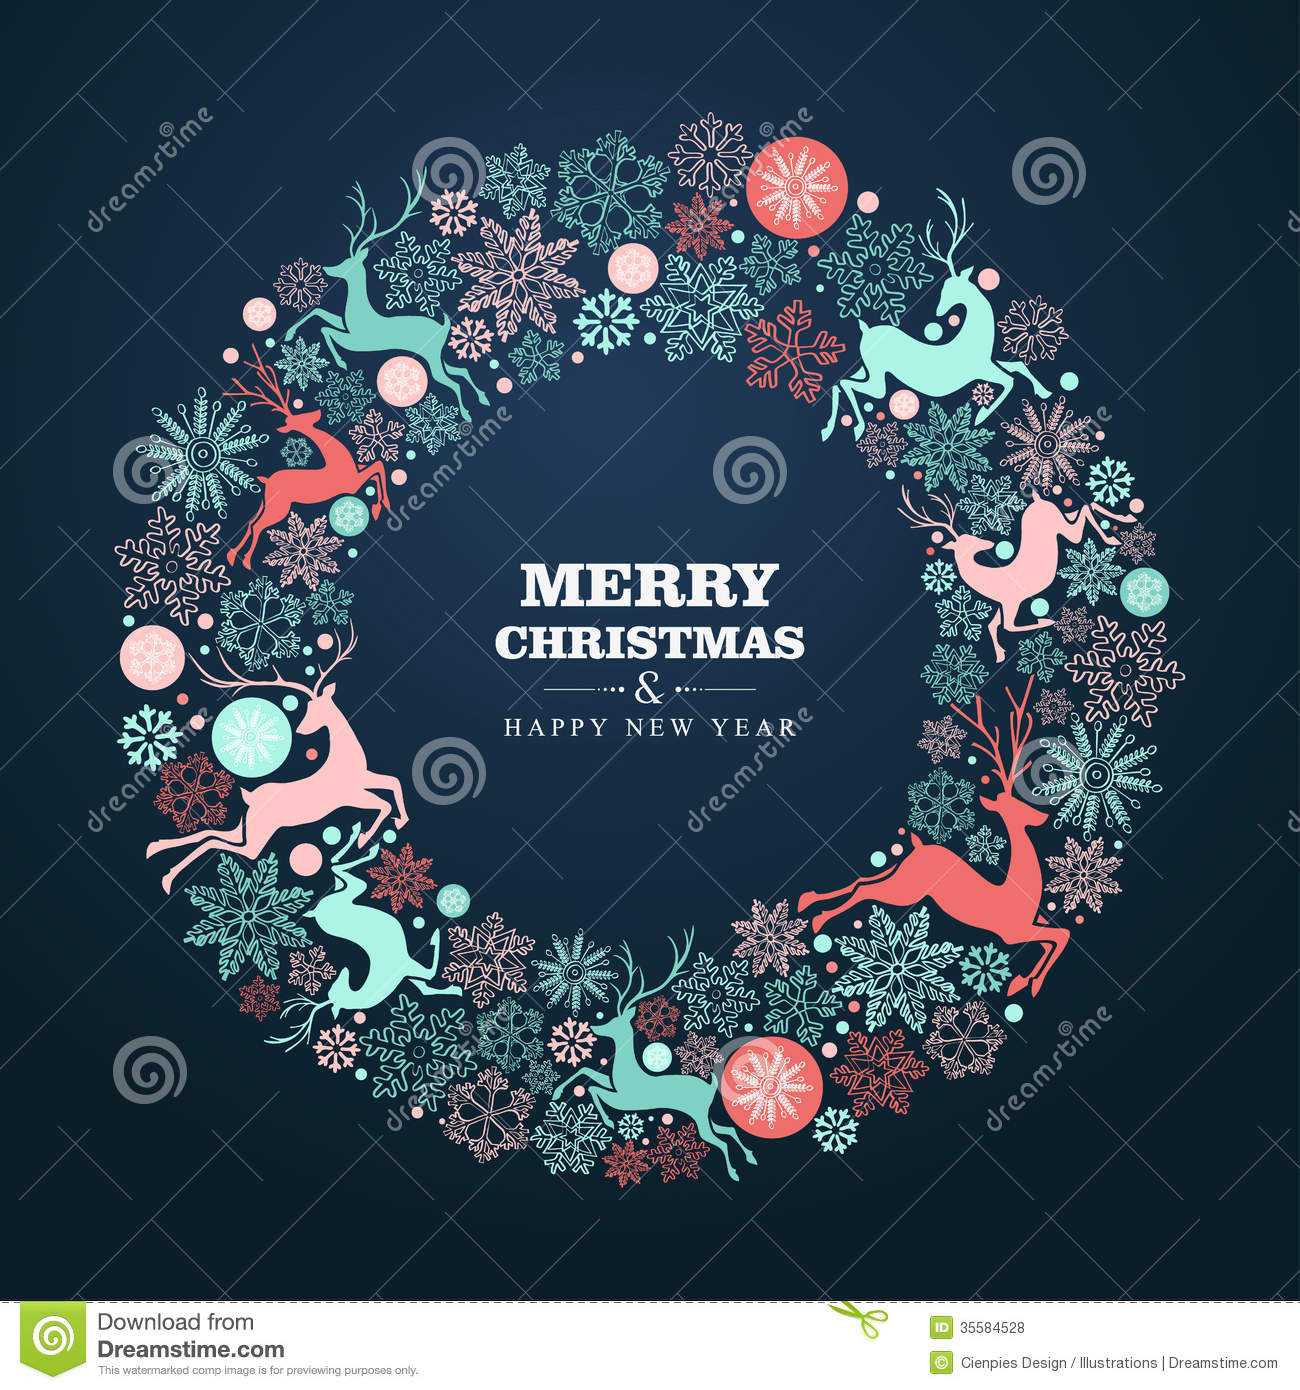 Merry Christmas And Happy New Year Greeting Card Stock ...